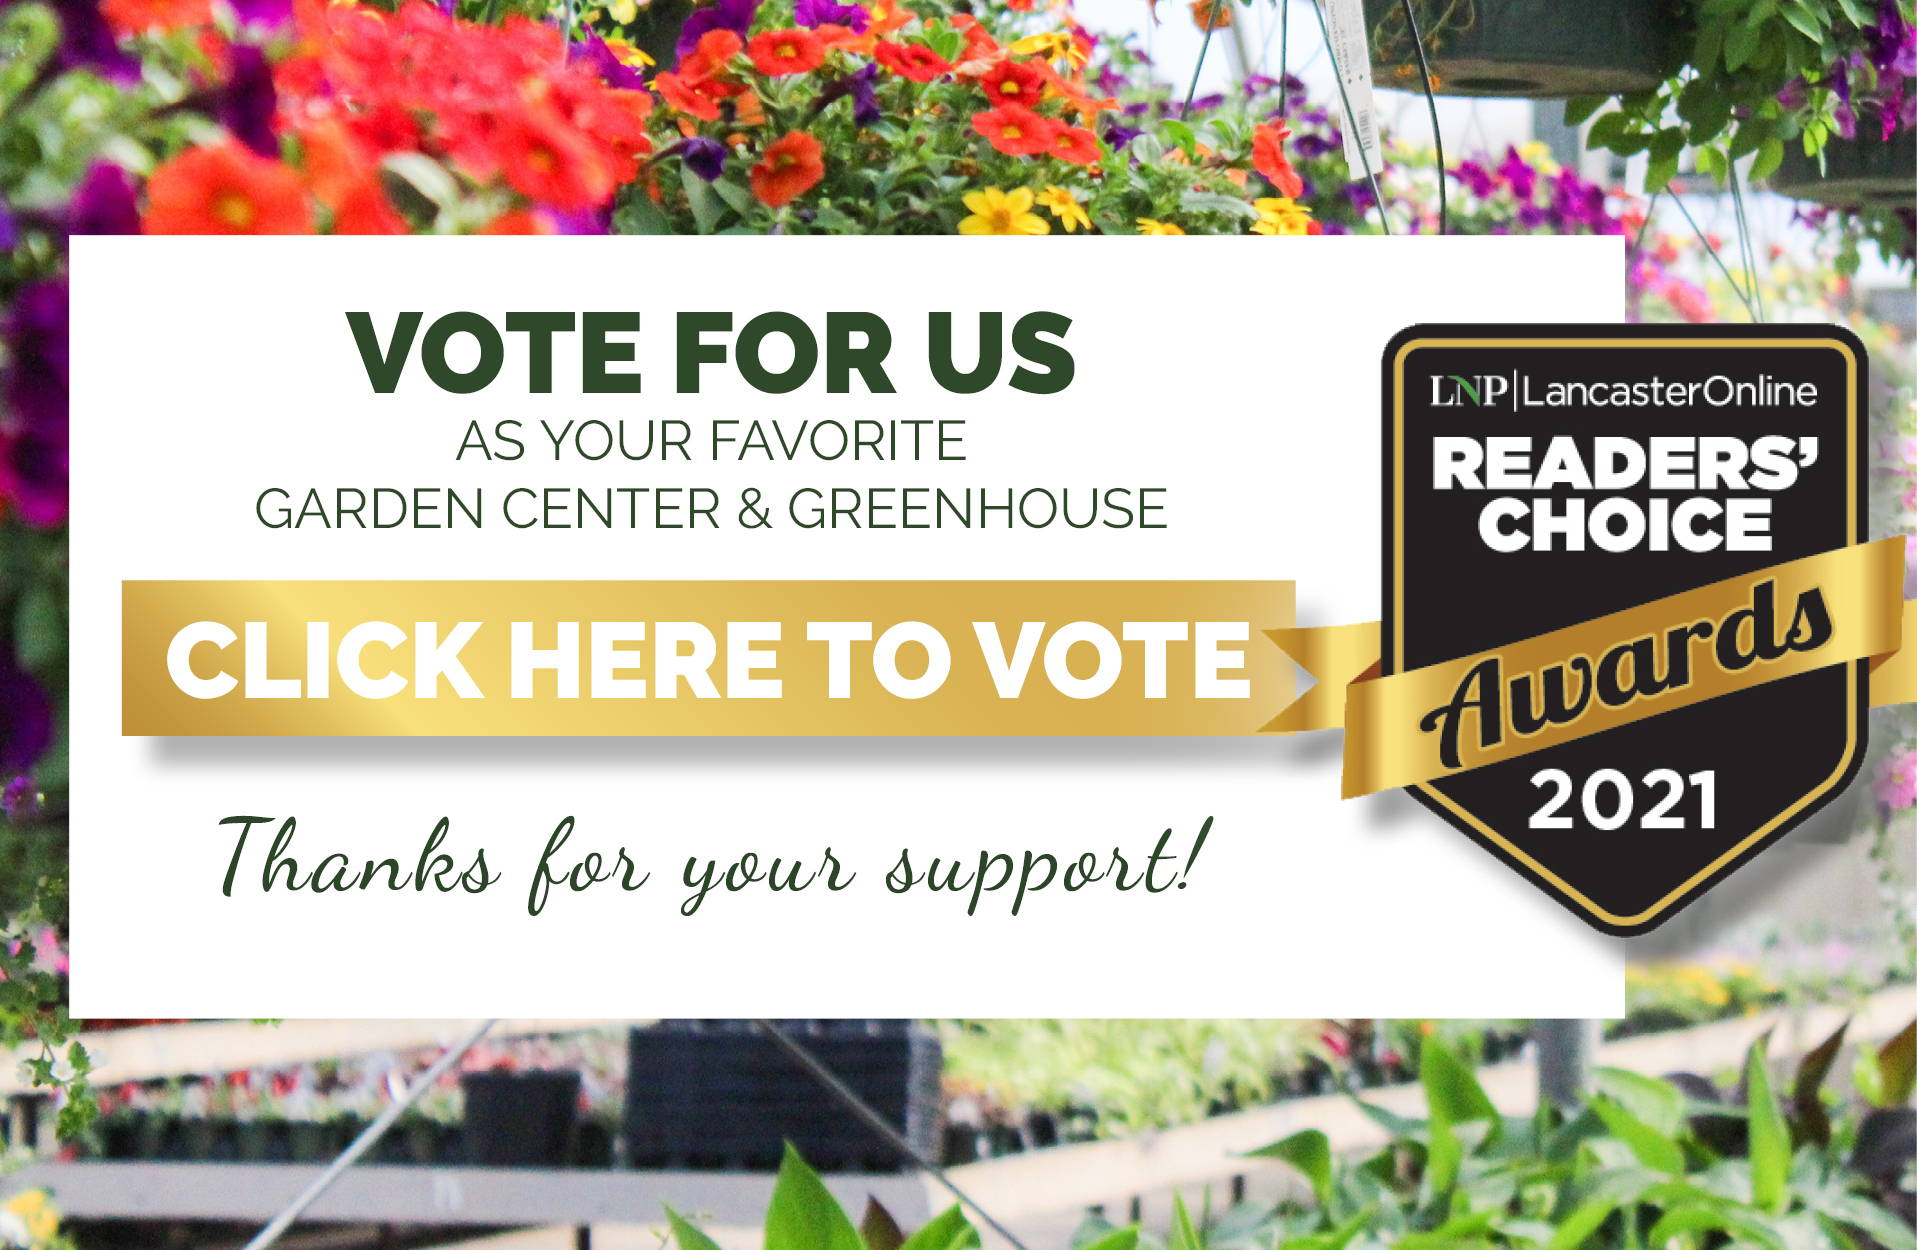 Vote for us as your favorite garden center and greenhouse! LNP 2021 Reader's Choice Awards. Click here to vote.